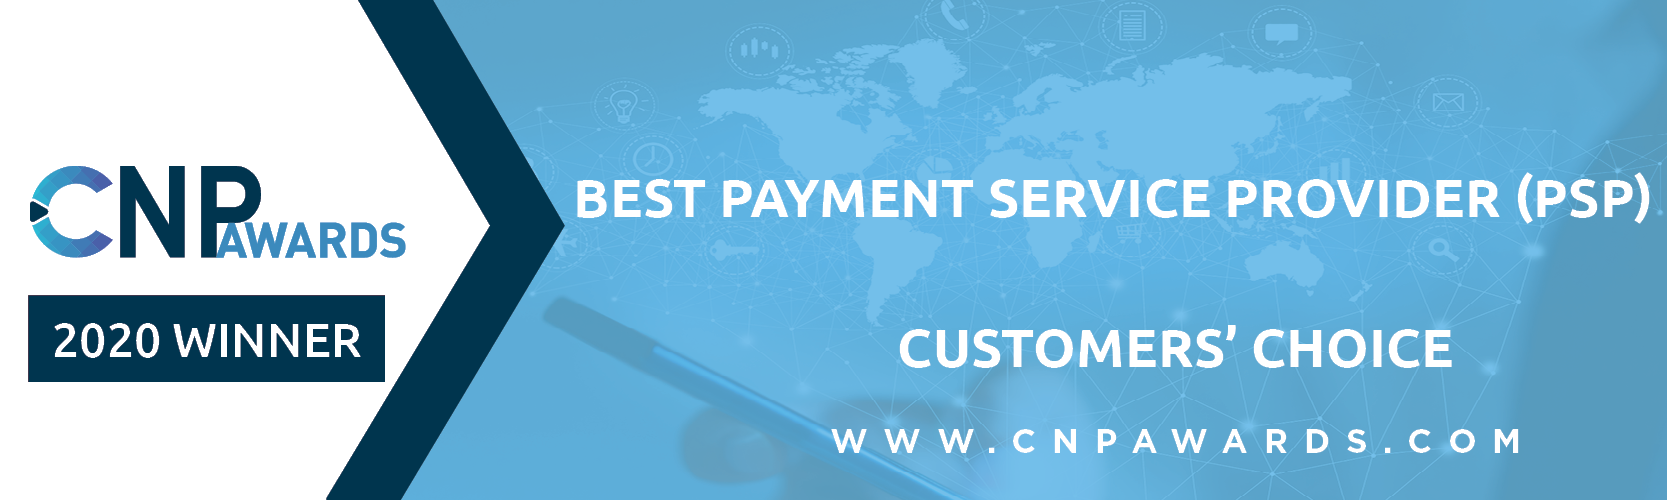 CNPAwards_Email Banner Template-Customer Choice_Best Payment Service Provider (PSP)